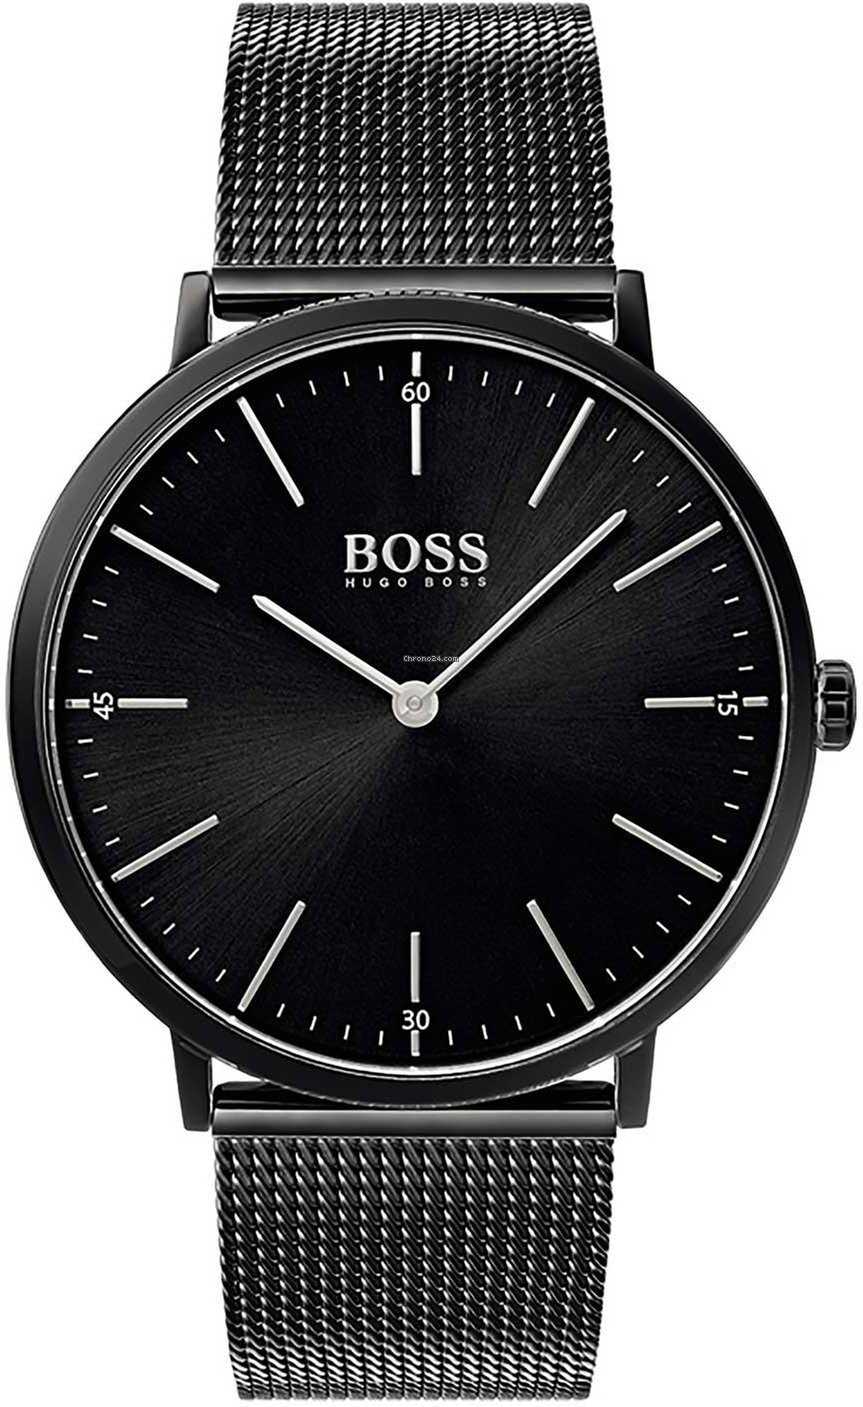 best quality skate shoes brand new Hugo Boss HORIZON 1513542 Herrenarmbanduhr